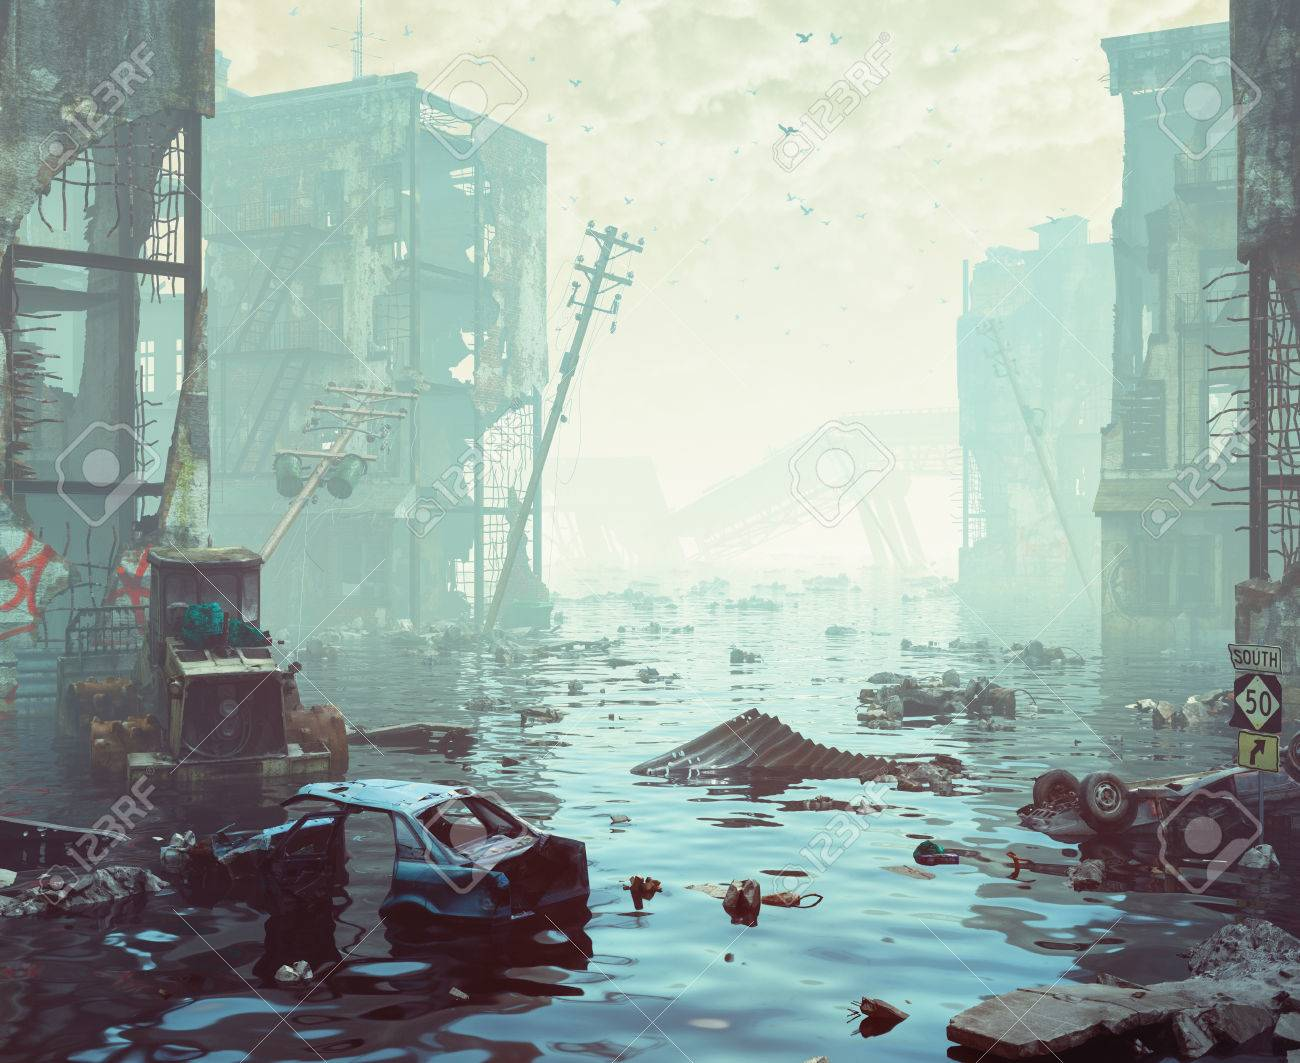 Ruins of the flooding city. Apocalyptic landscape.3d illustration concept - 85707262